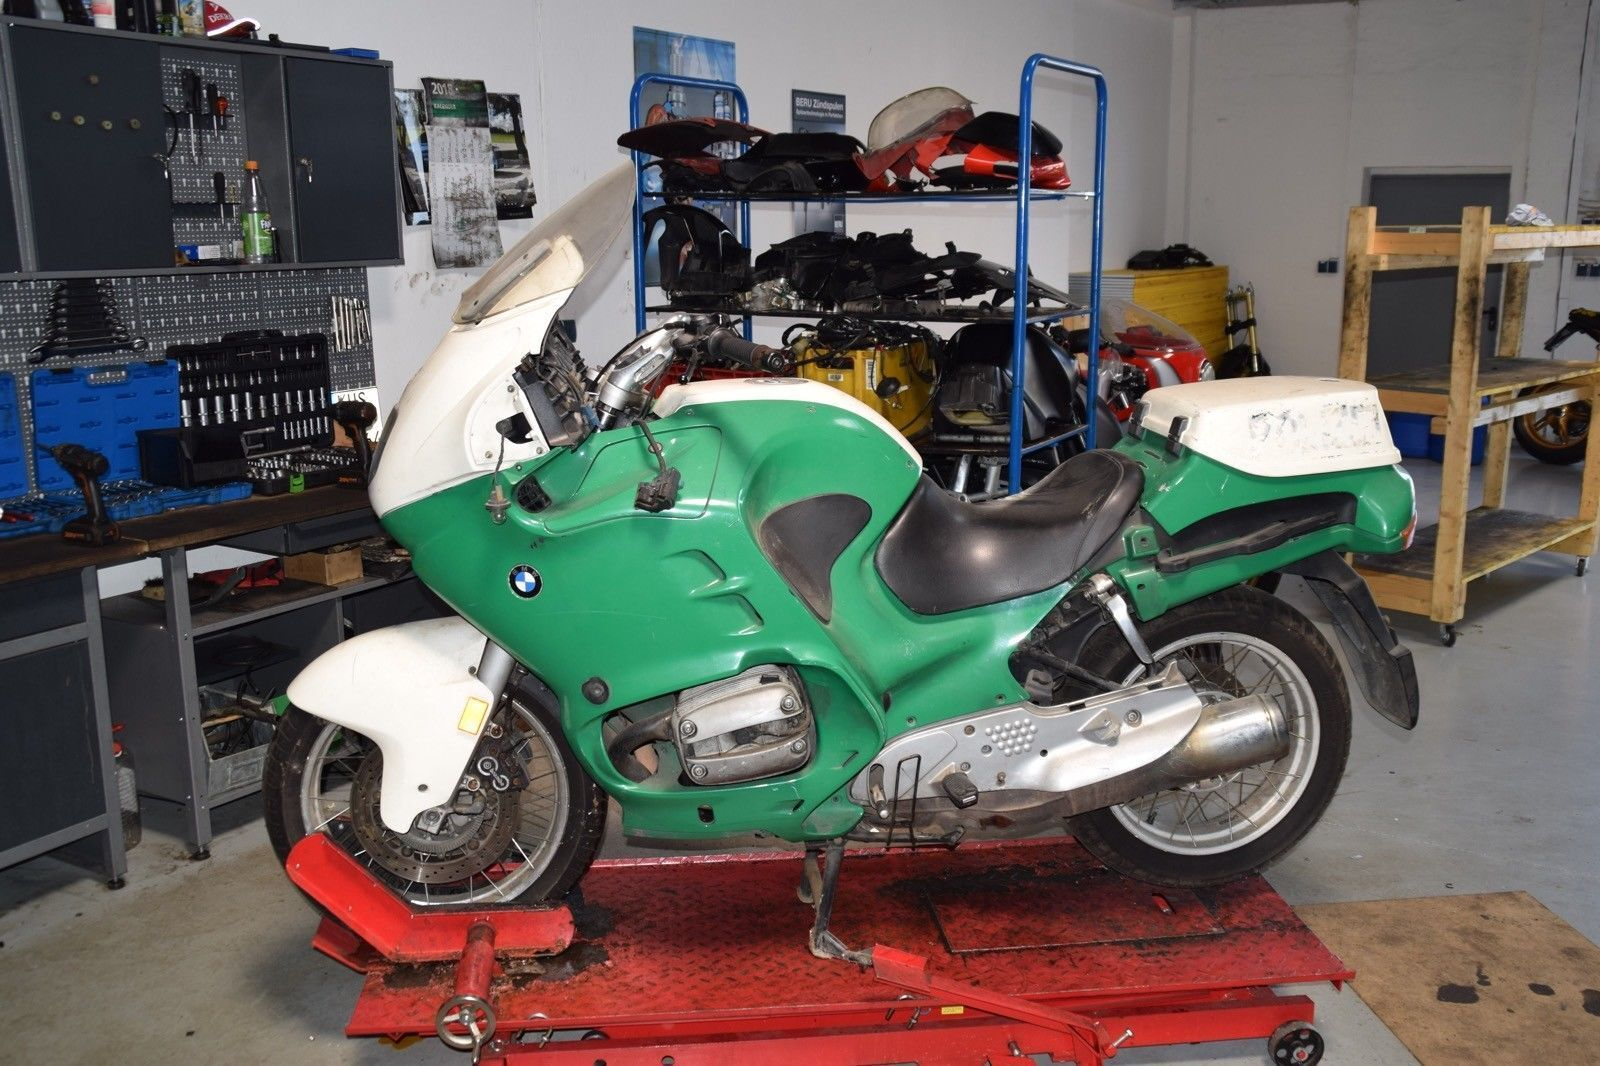 Bmw r 850 rt 259 abs bj.1994 - cylindre + piston